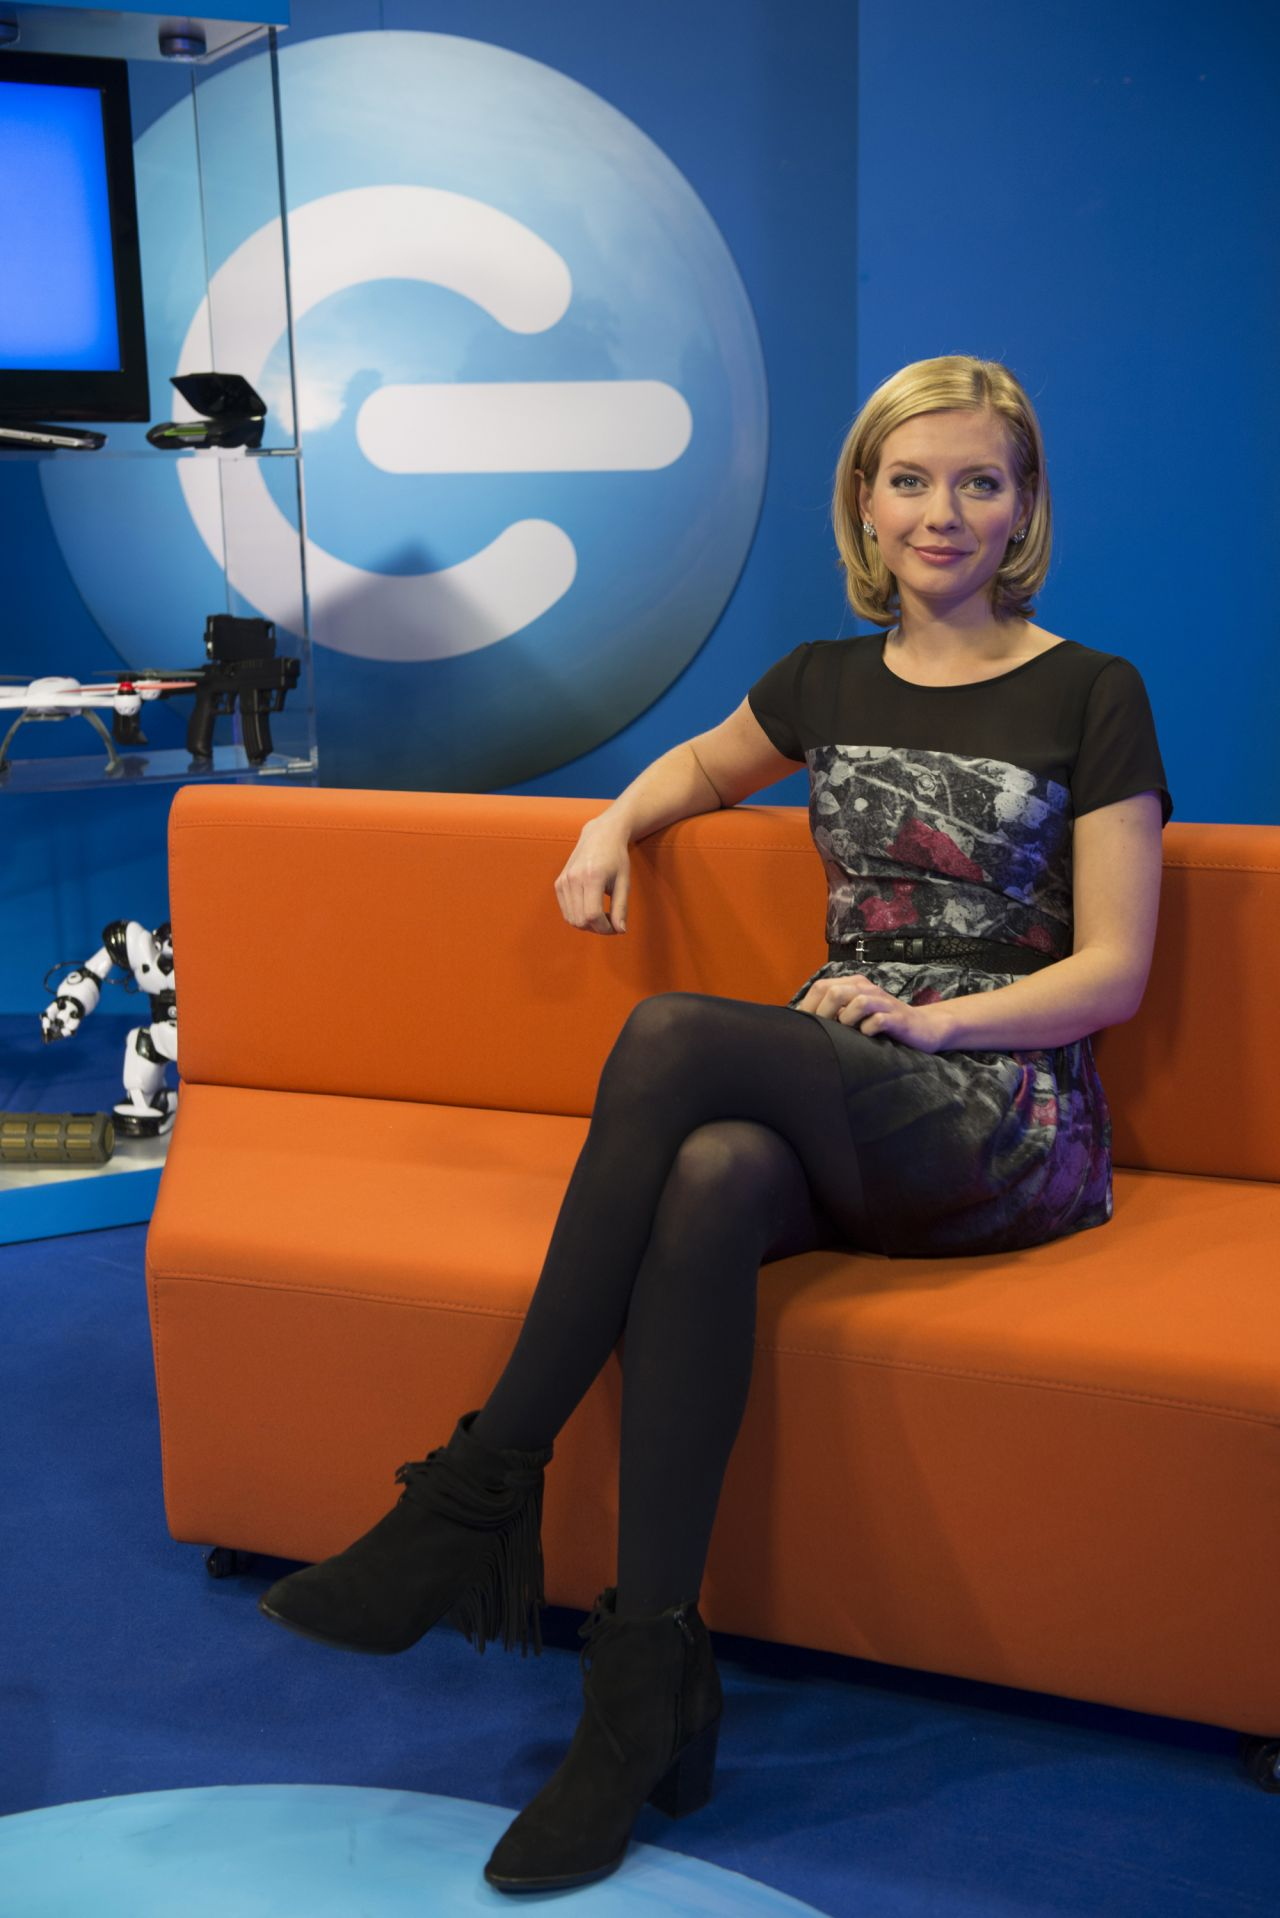 Rachel Riley - The Gadget Show Promo